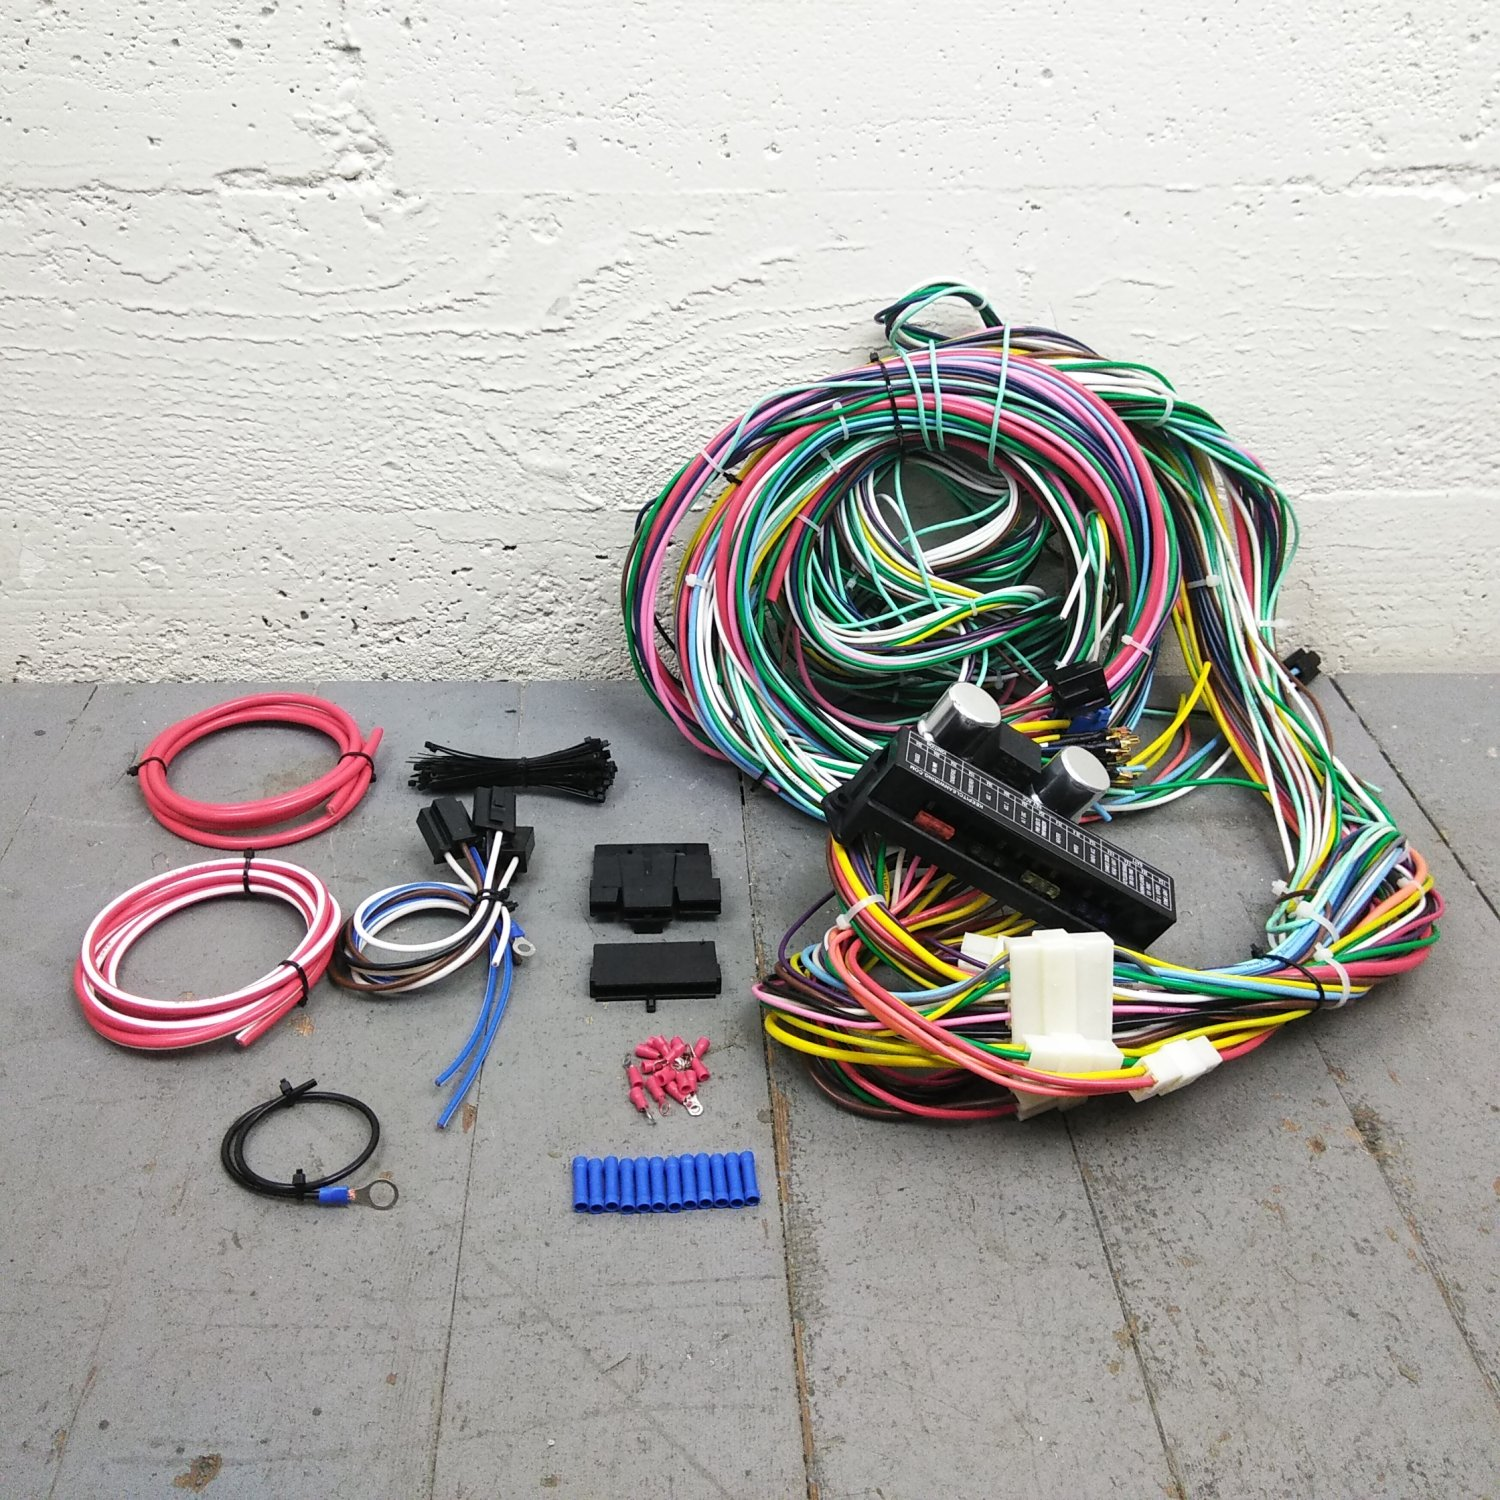 details about 1969 pontiac gto wire harness upgrade kit fits painless new fuse update terminal 1969 Pontiac Gto Wiring